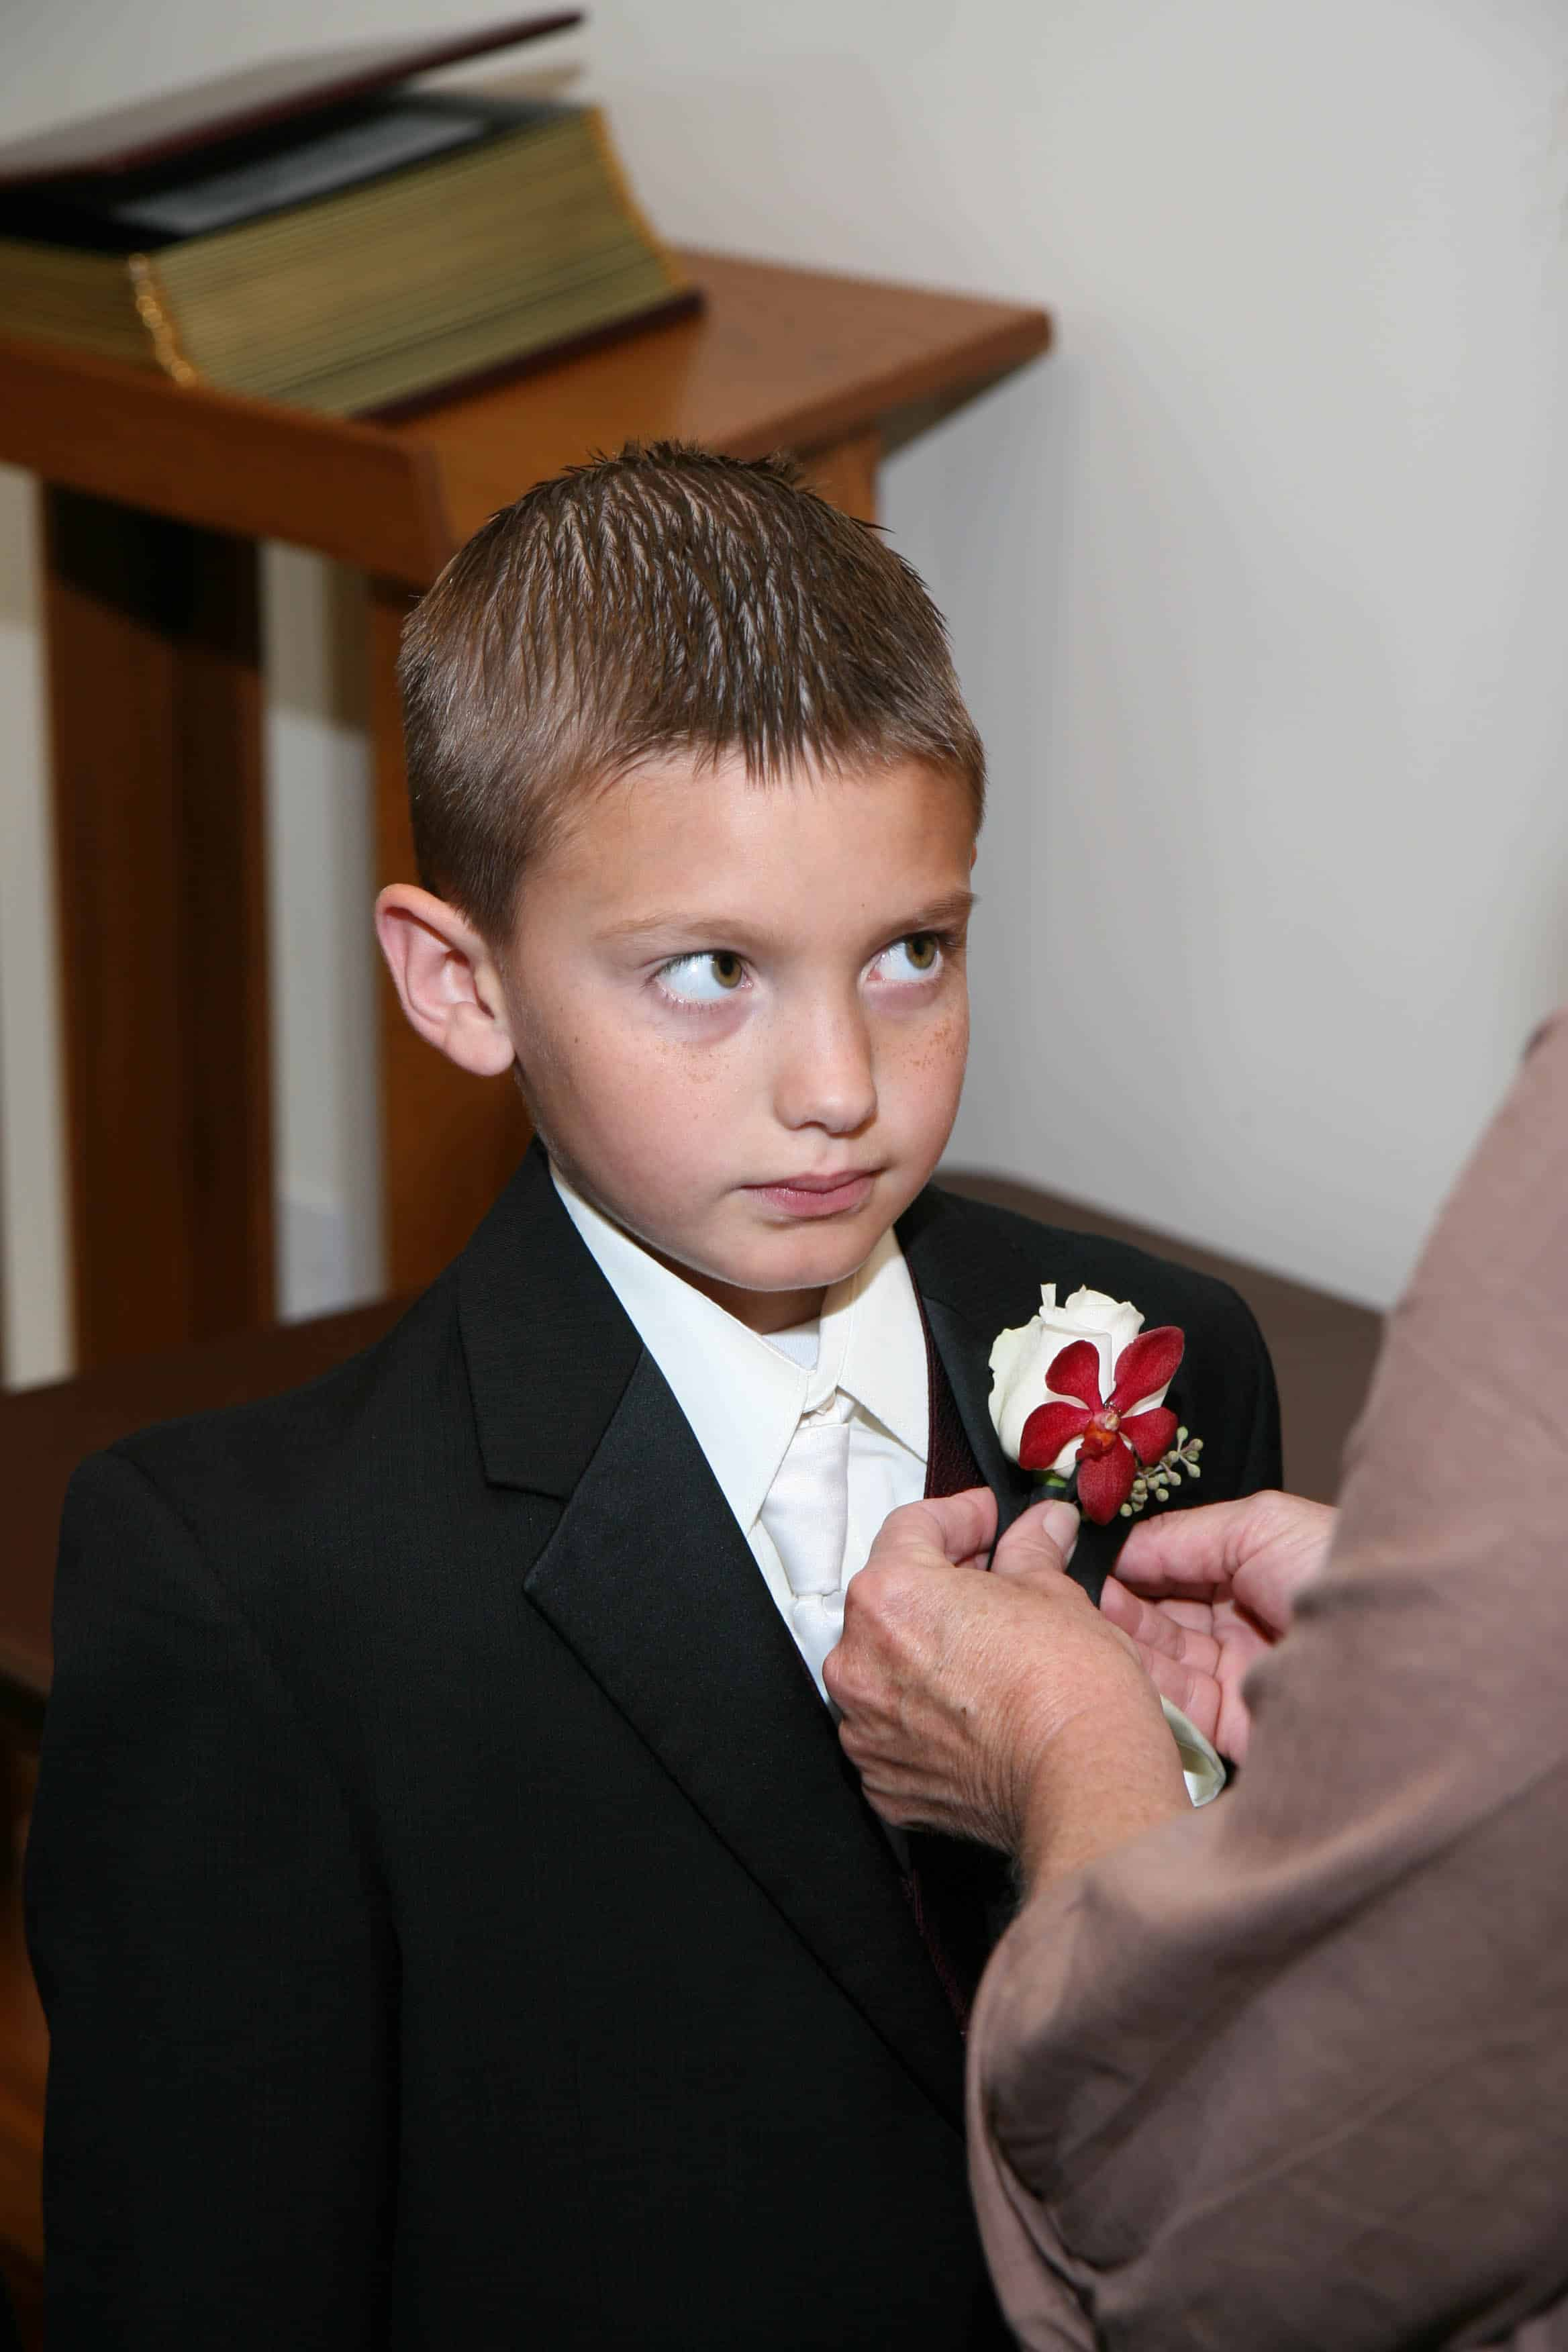 boy with flower being pinned on